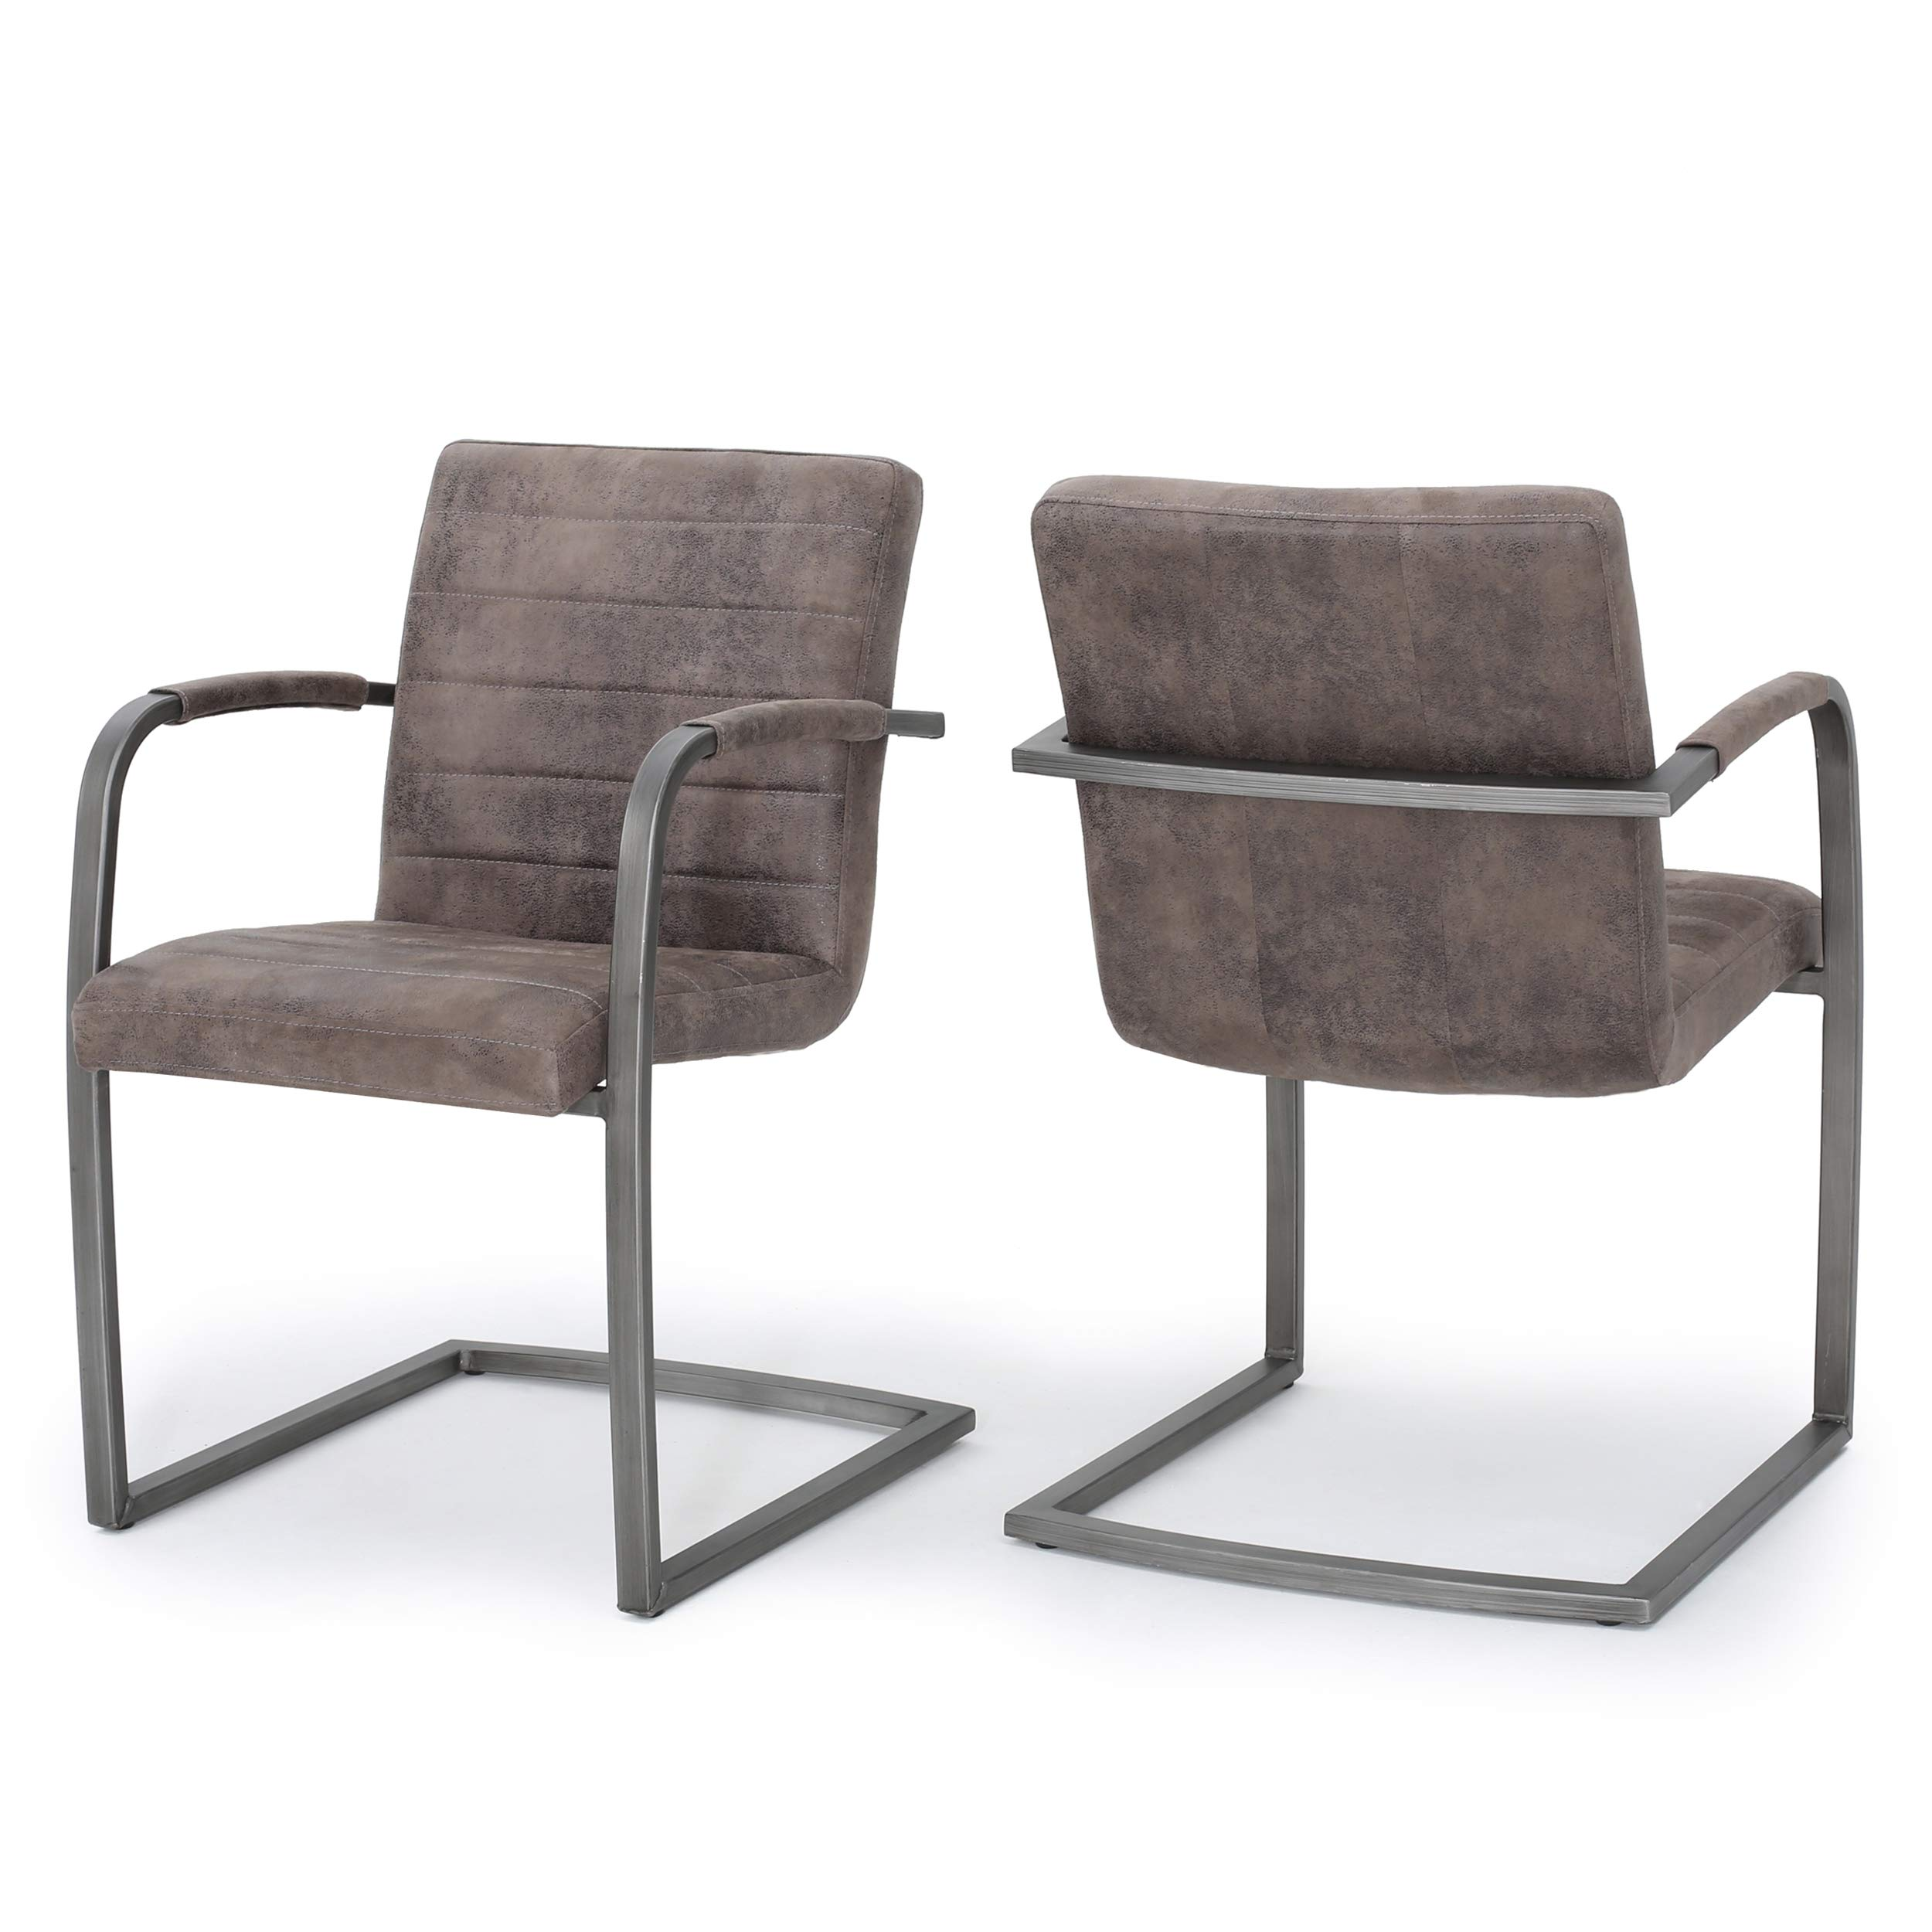 Christopher Knight Home Arlo Arm Chair, Greyish Brown